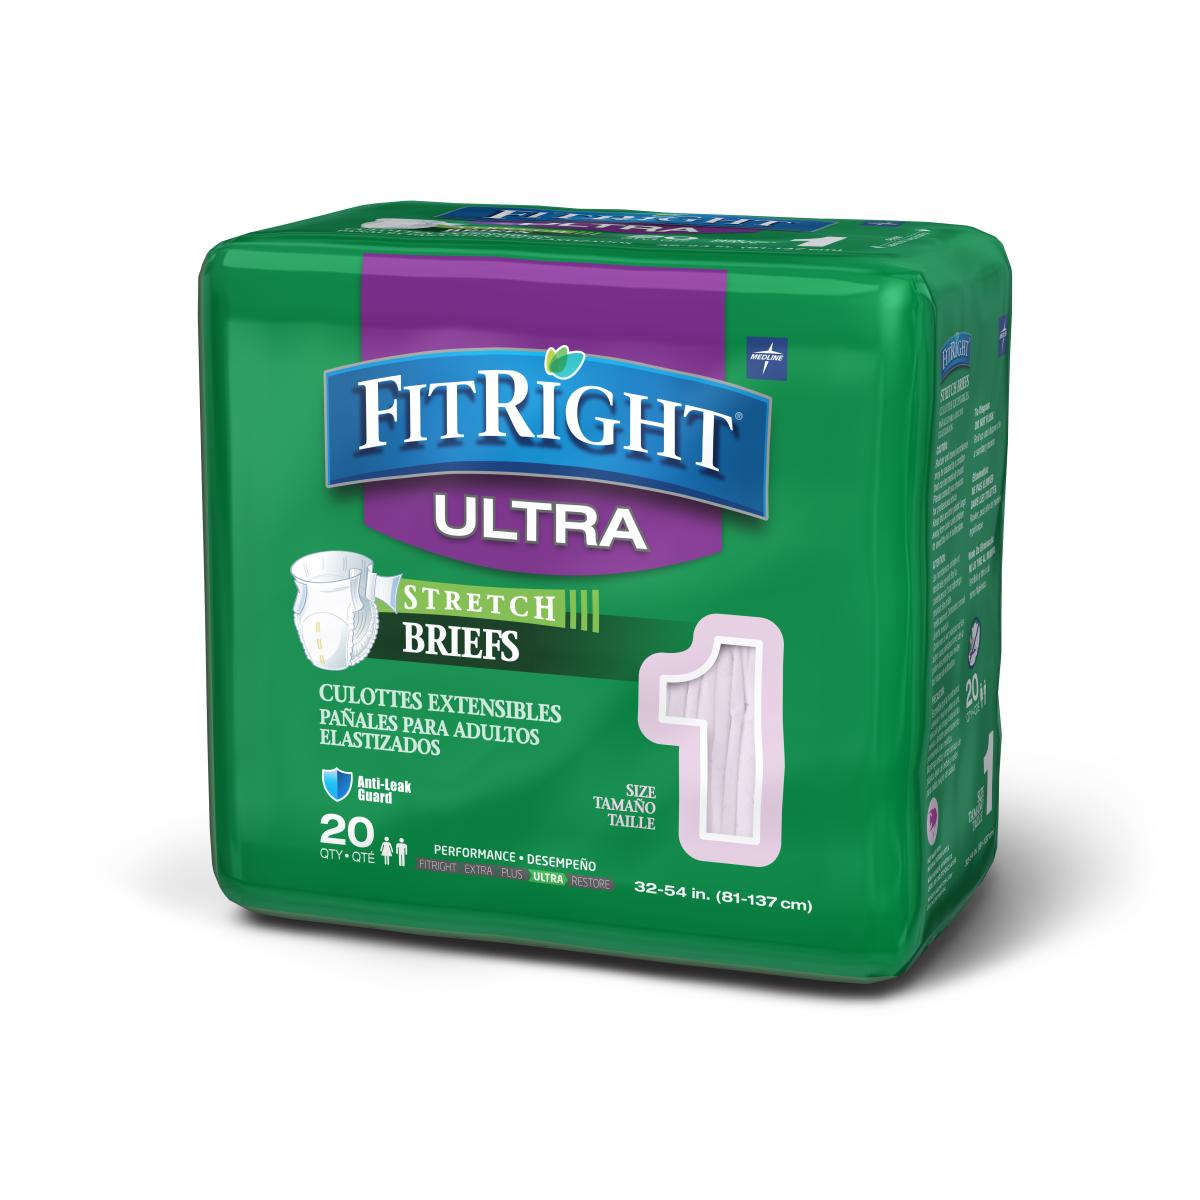 Medline FitRight Stretch Ultra Disposable Briefs 20 Count (Pack of 4)